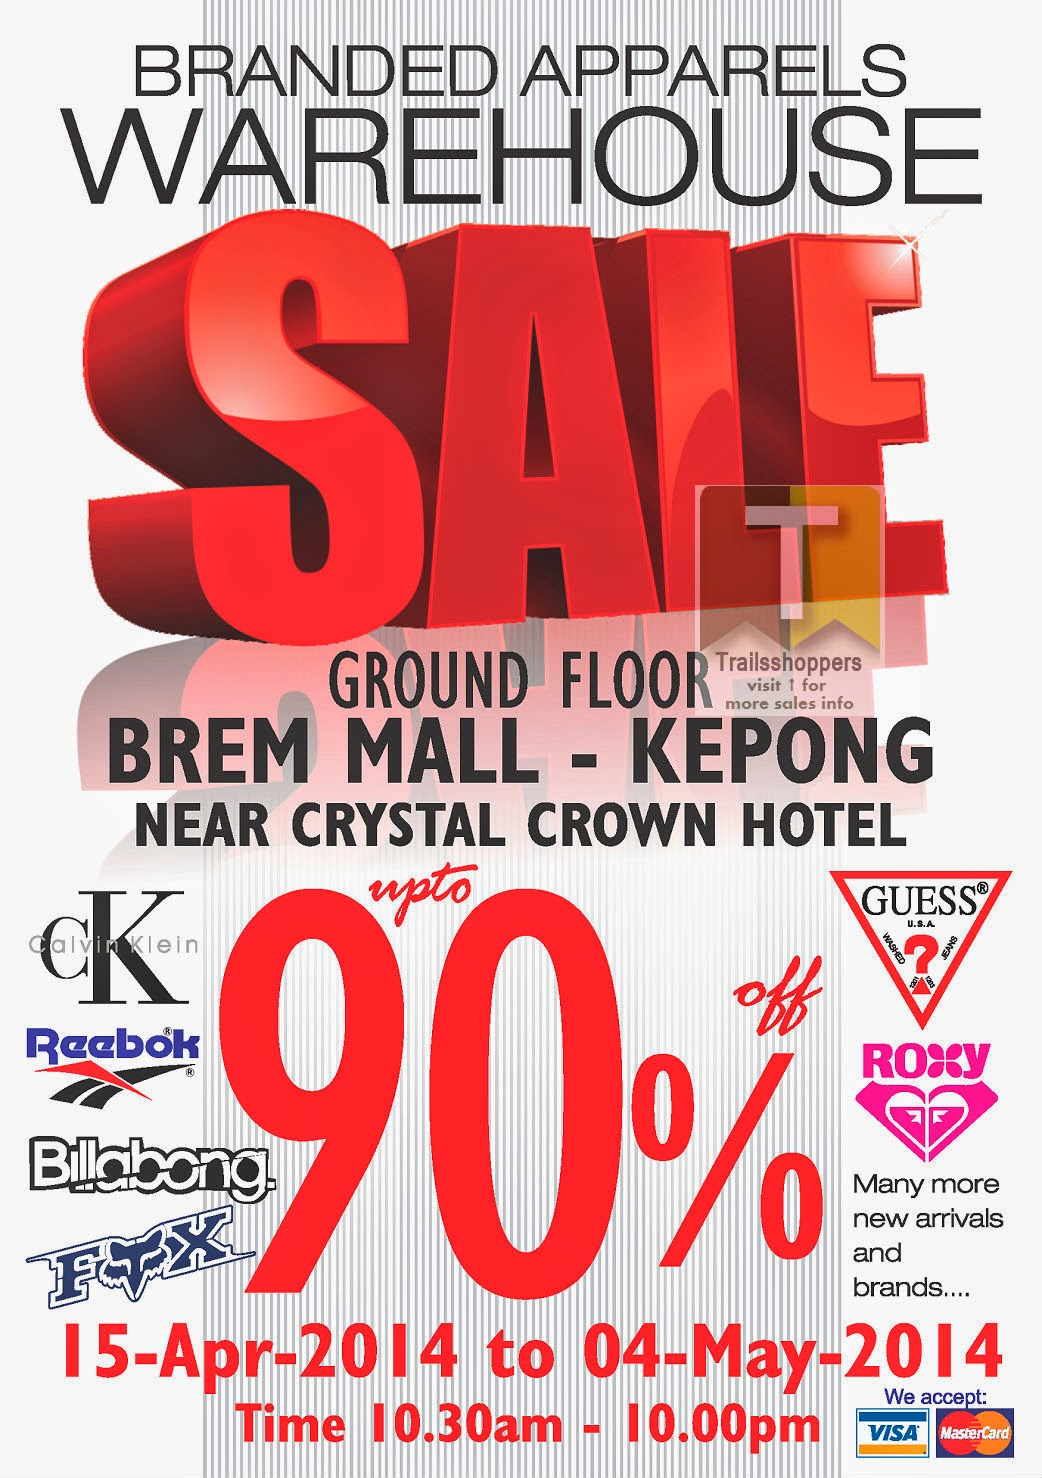 Branded Apparels Warehouse Sale at Brem Mall Kepong Discounts up to 90% off